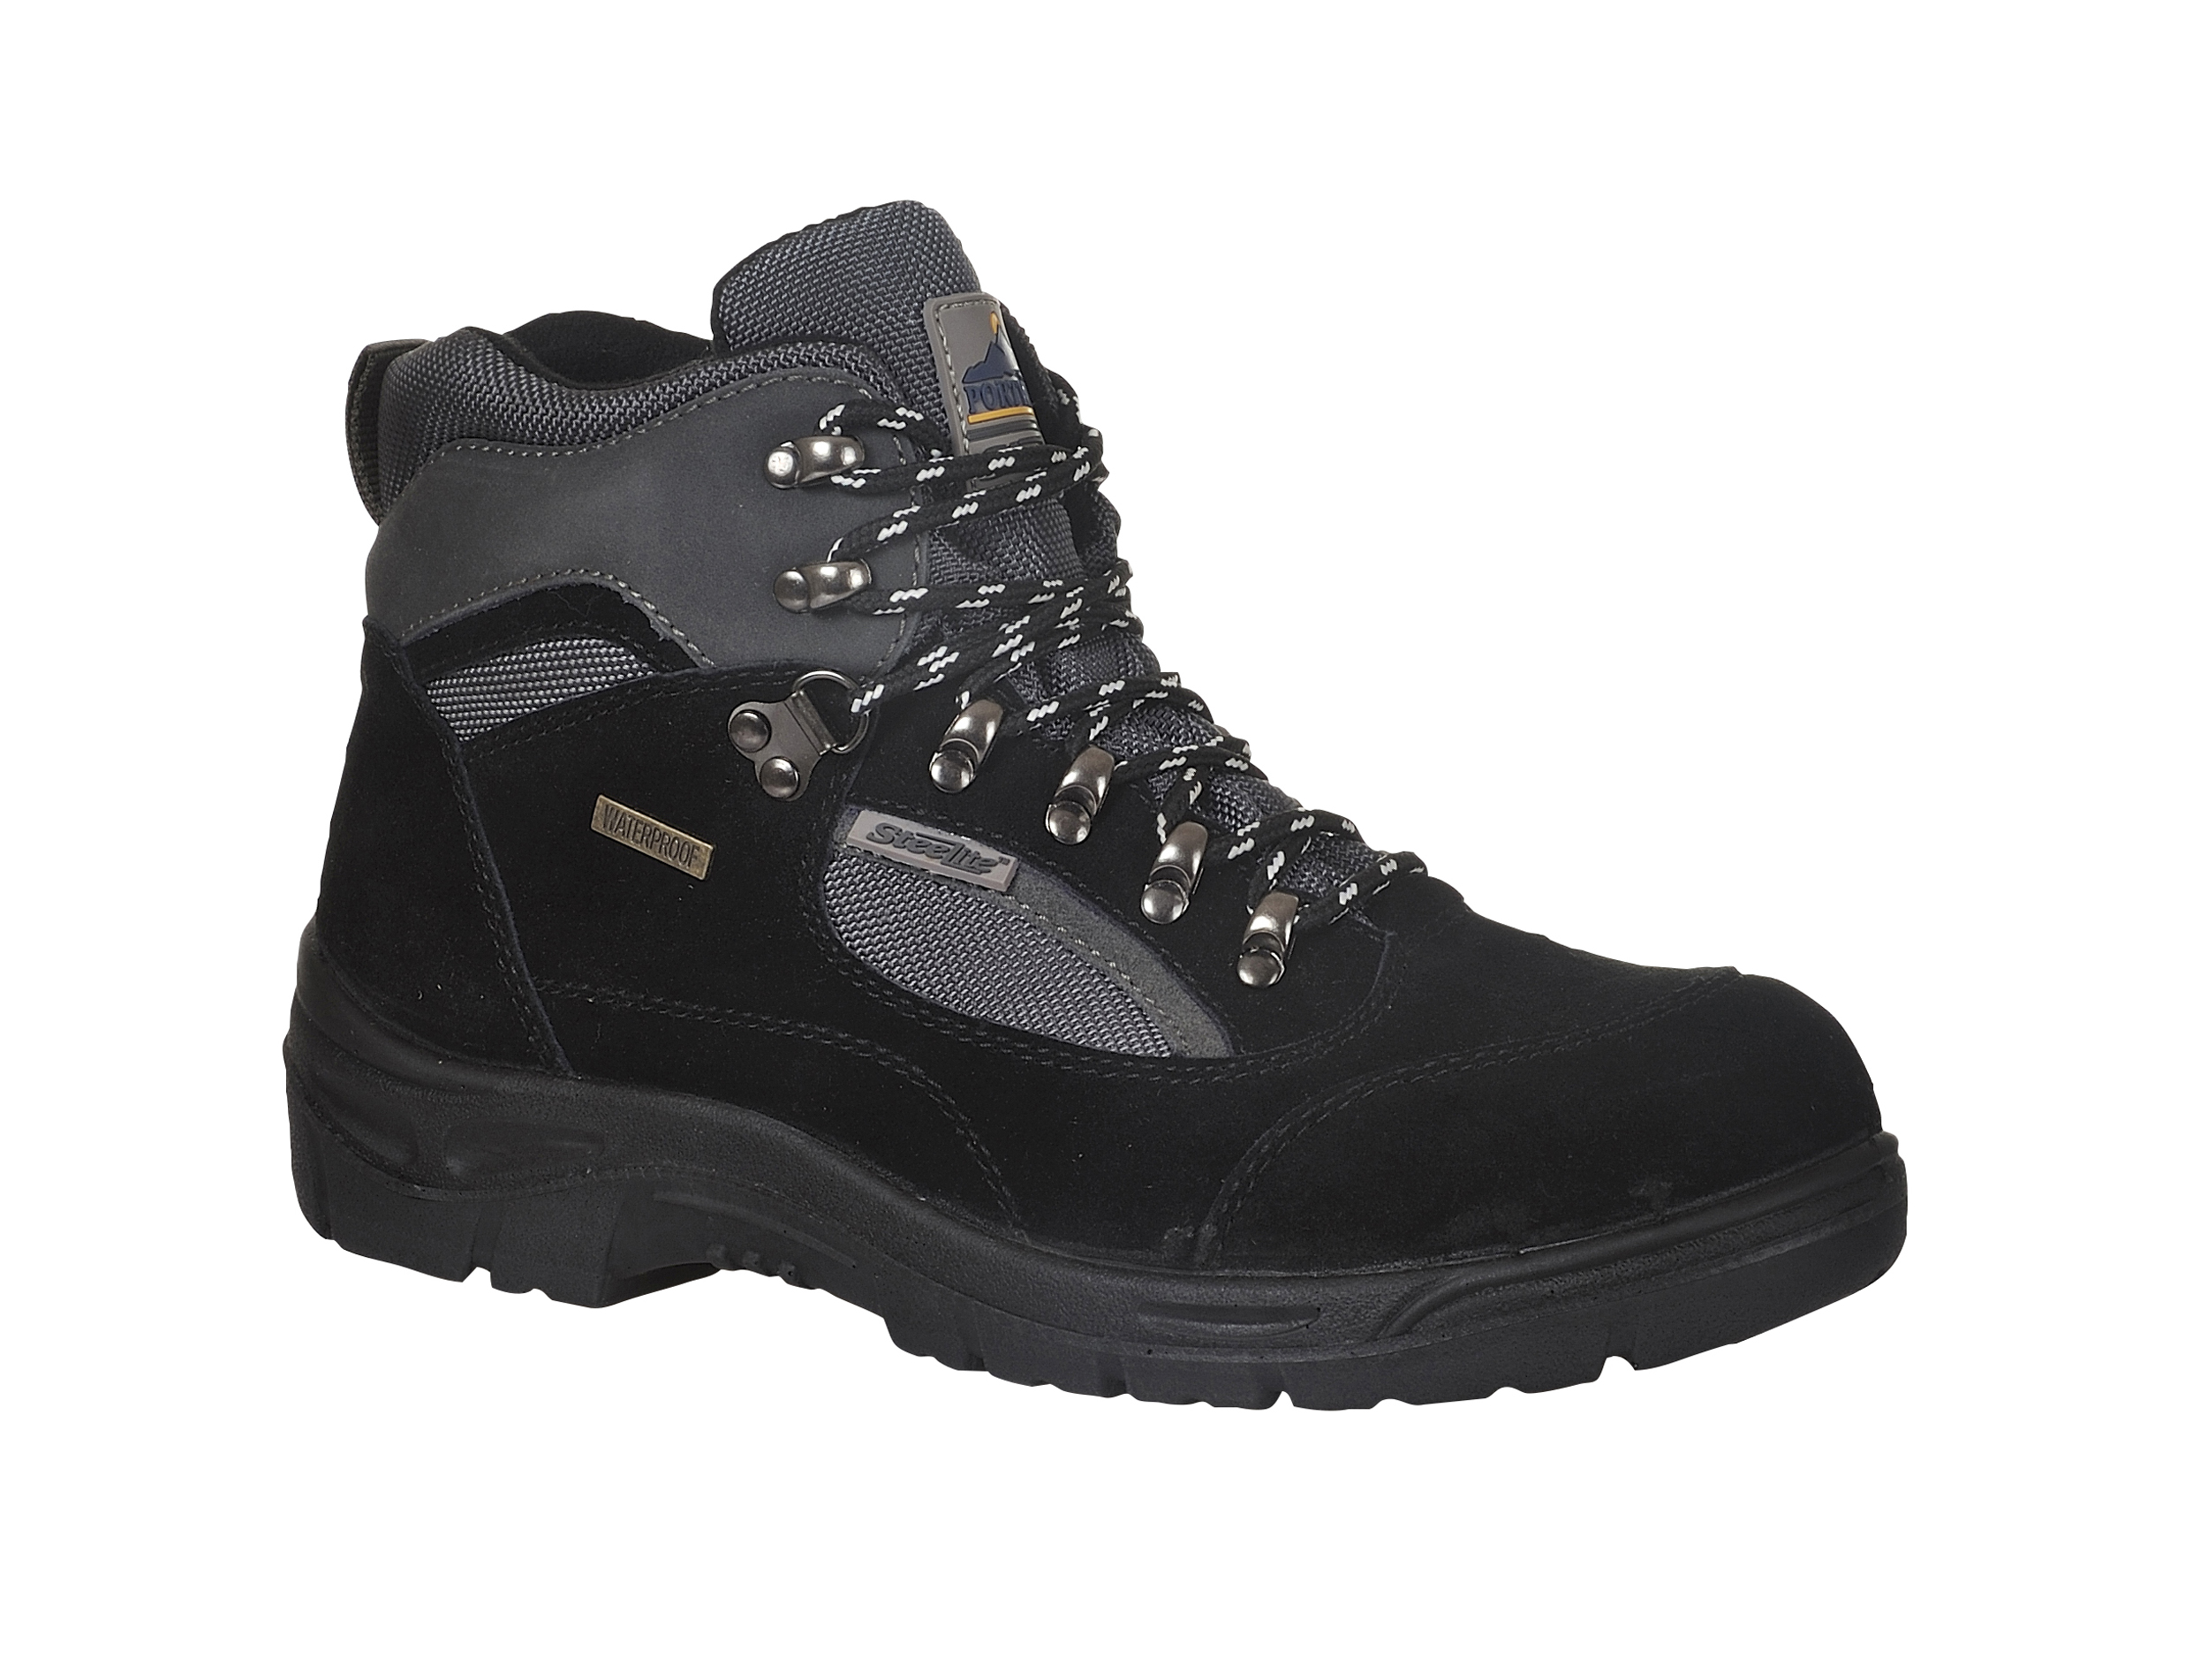 Portwest Steelite All Weather Hiker Boots S3  Black